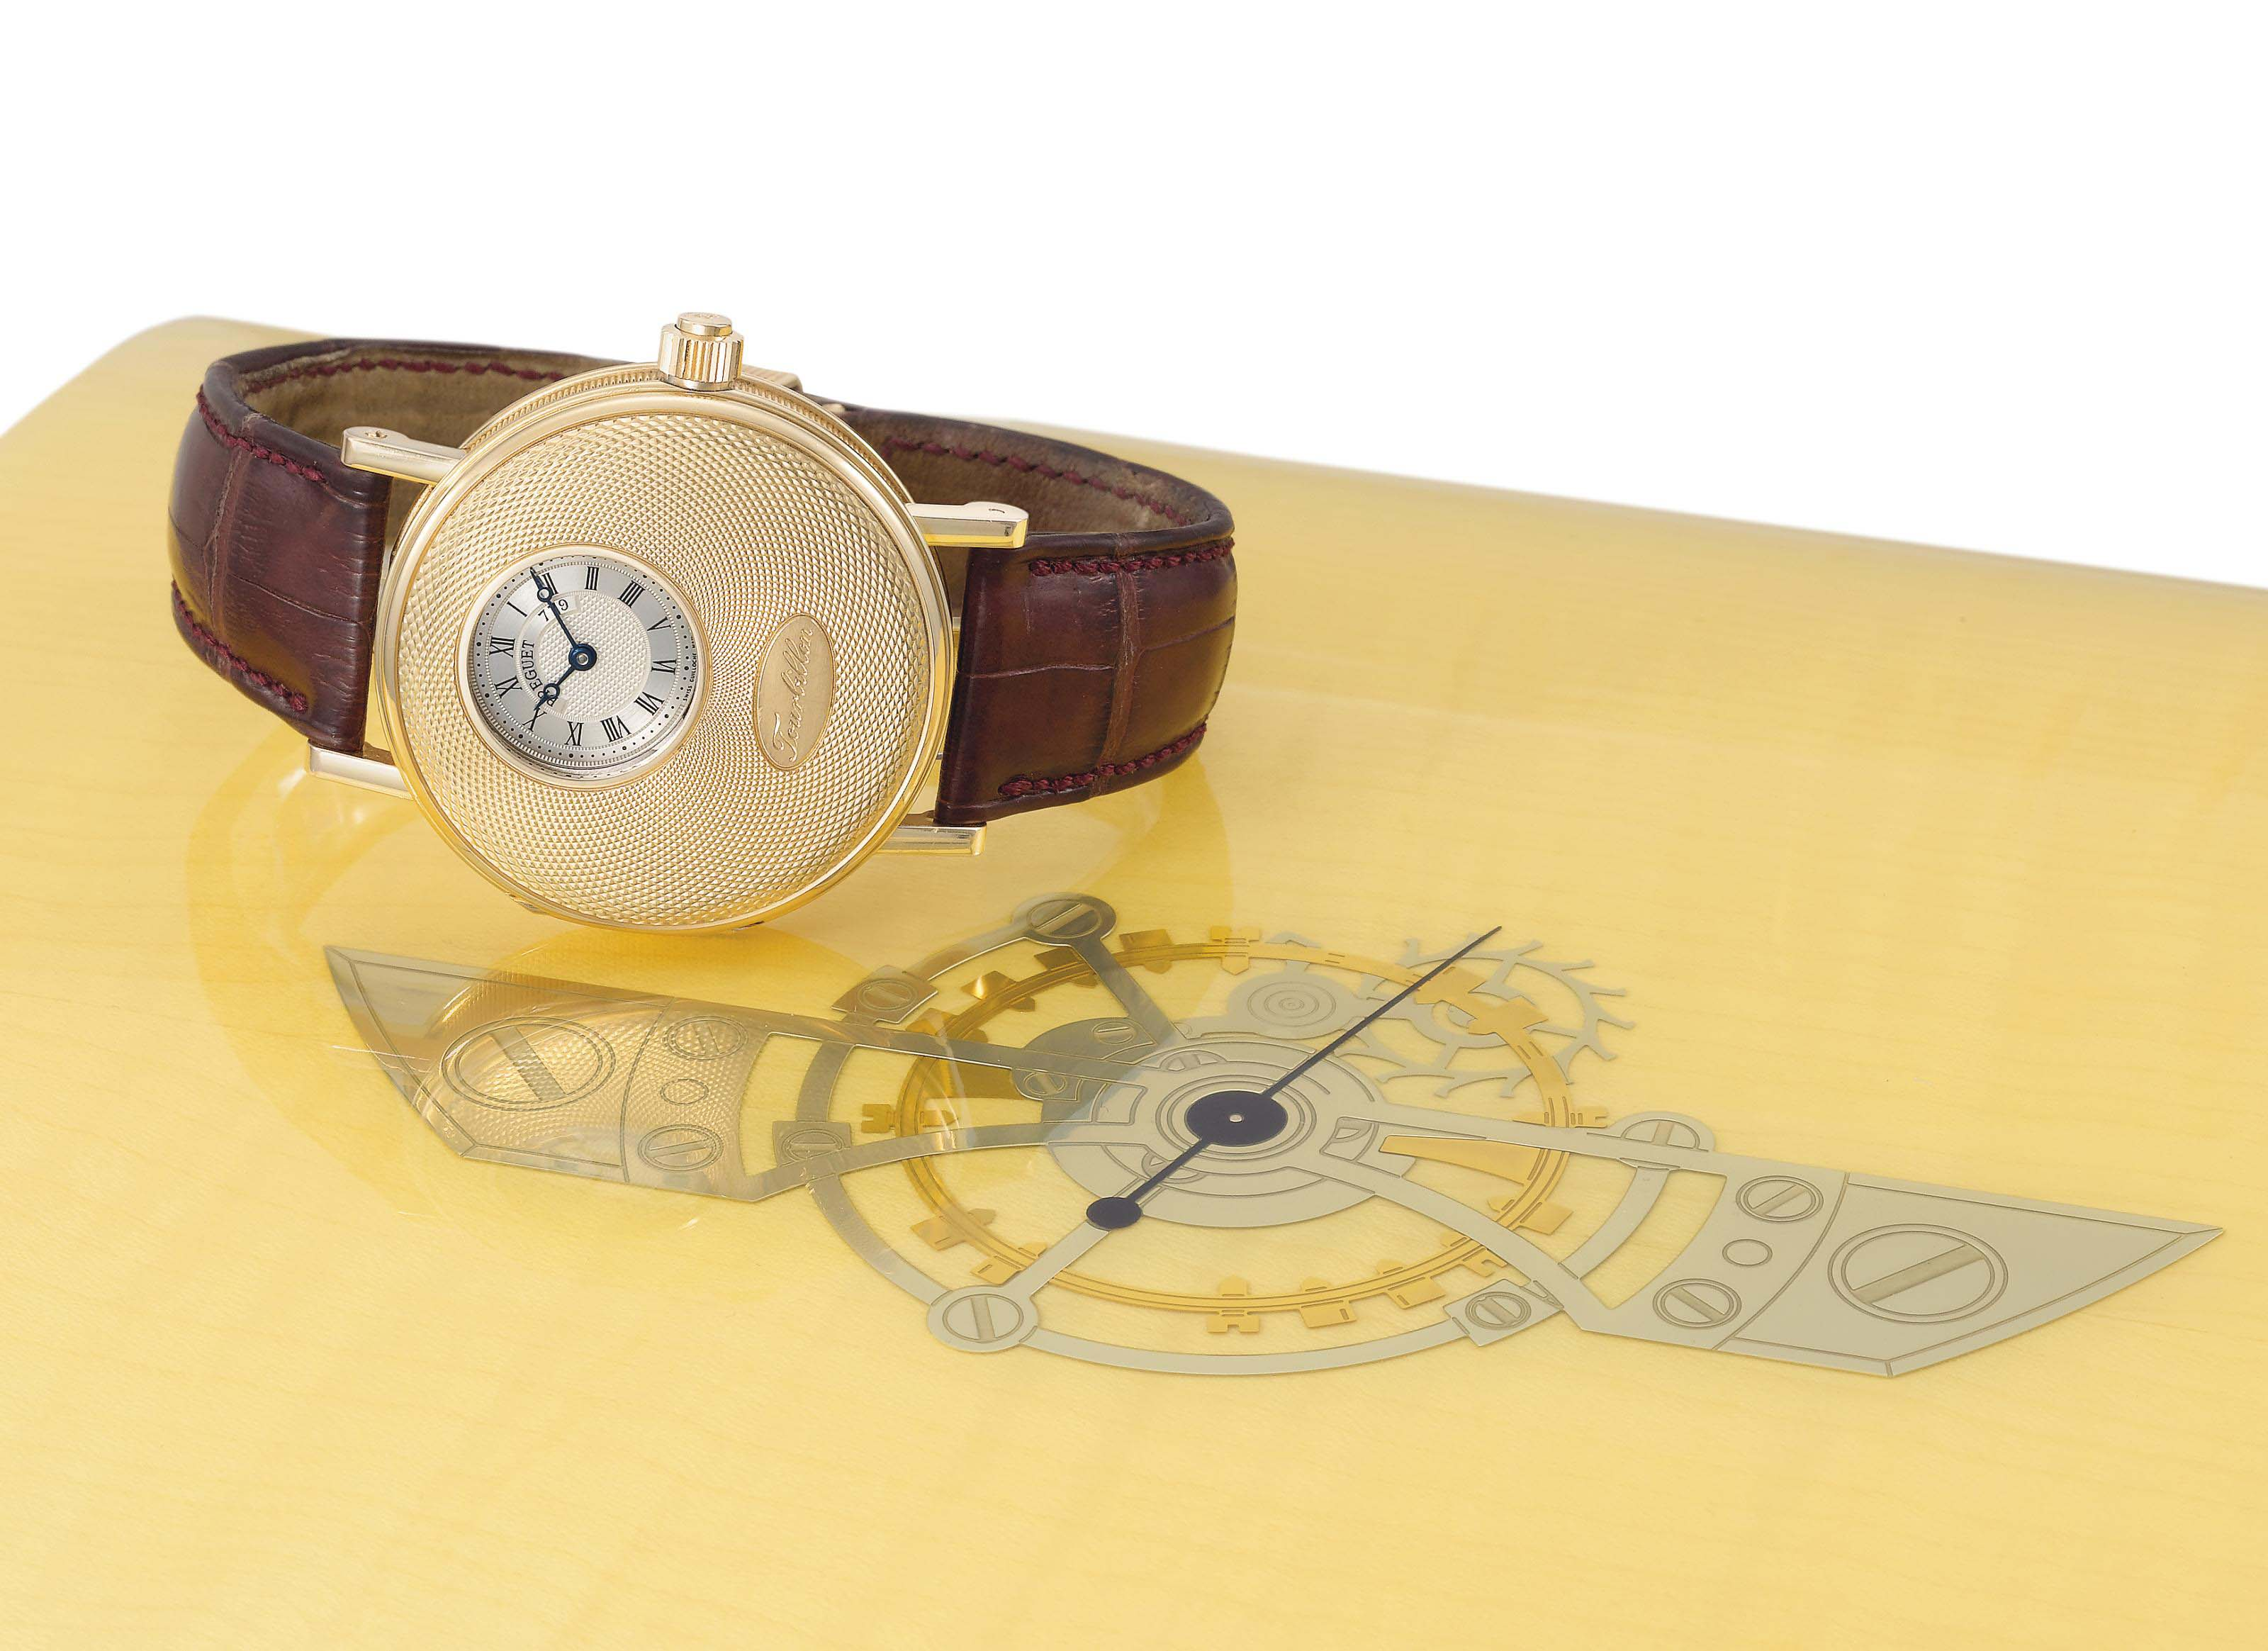 Breguet. A very fine and rare 18K special edition pink gold half hunter case tourbillon wristwatch with certificate and box